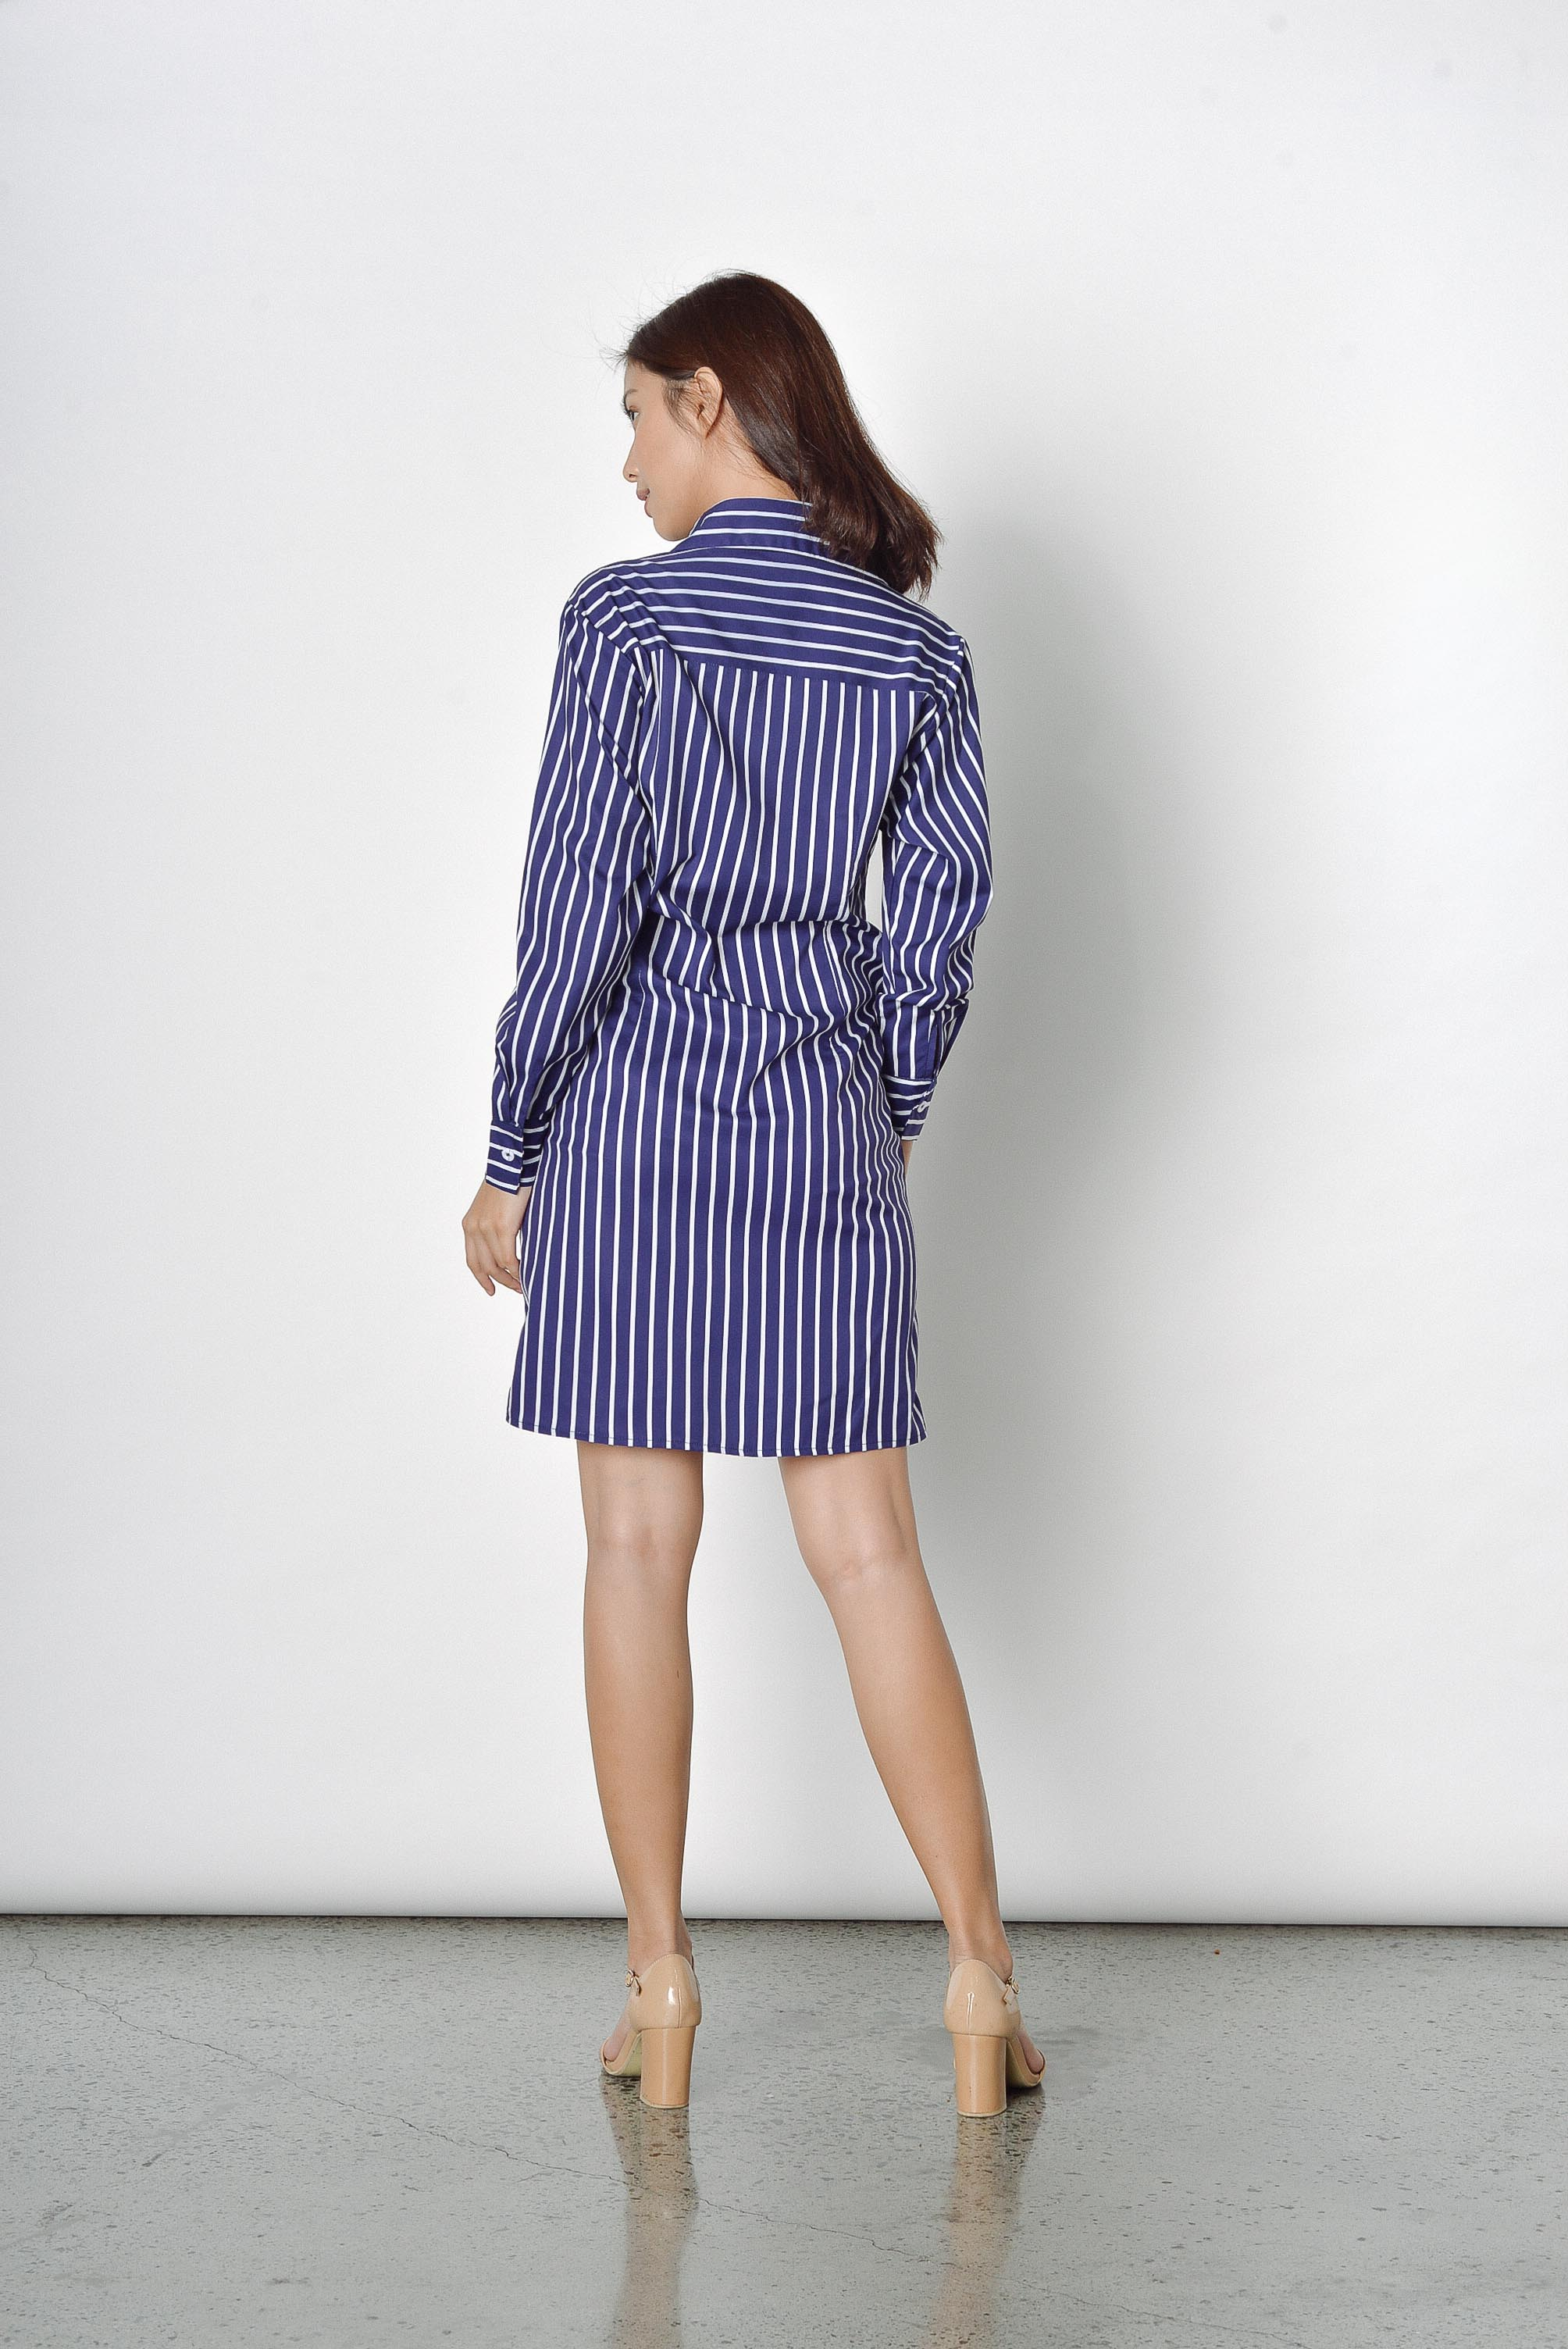 Delicia Stripes Dress in Navy